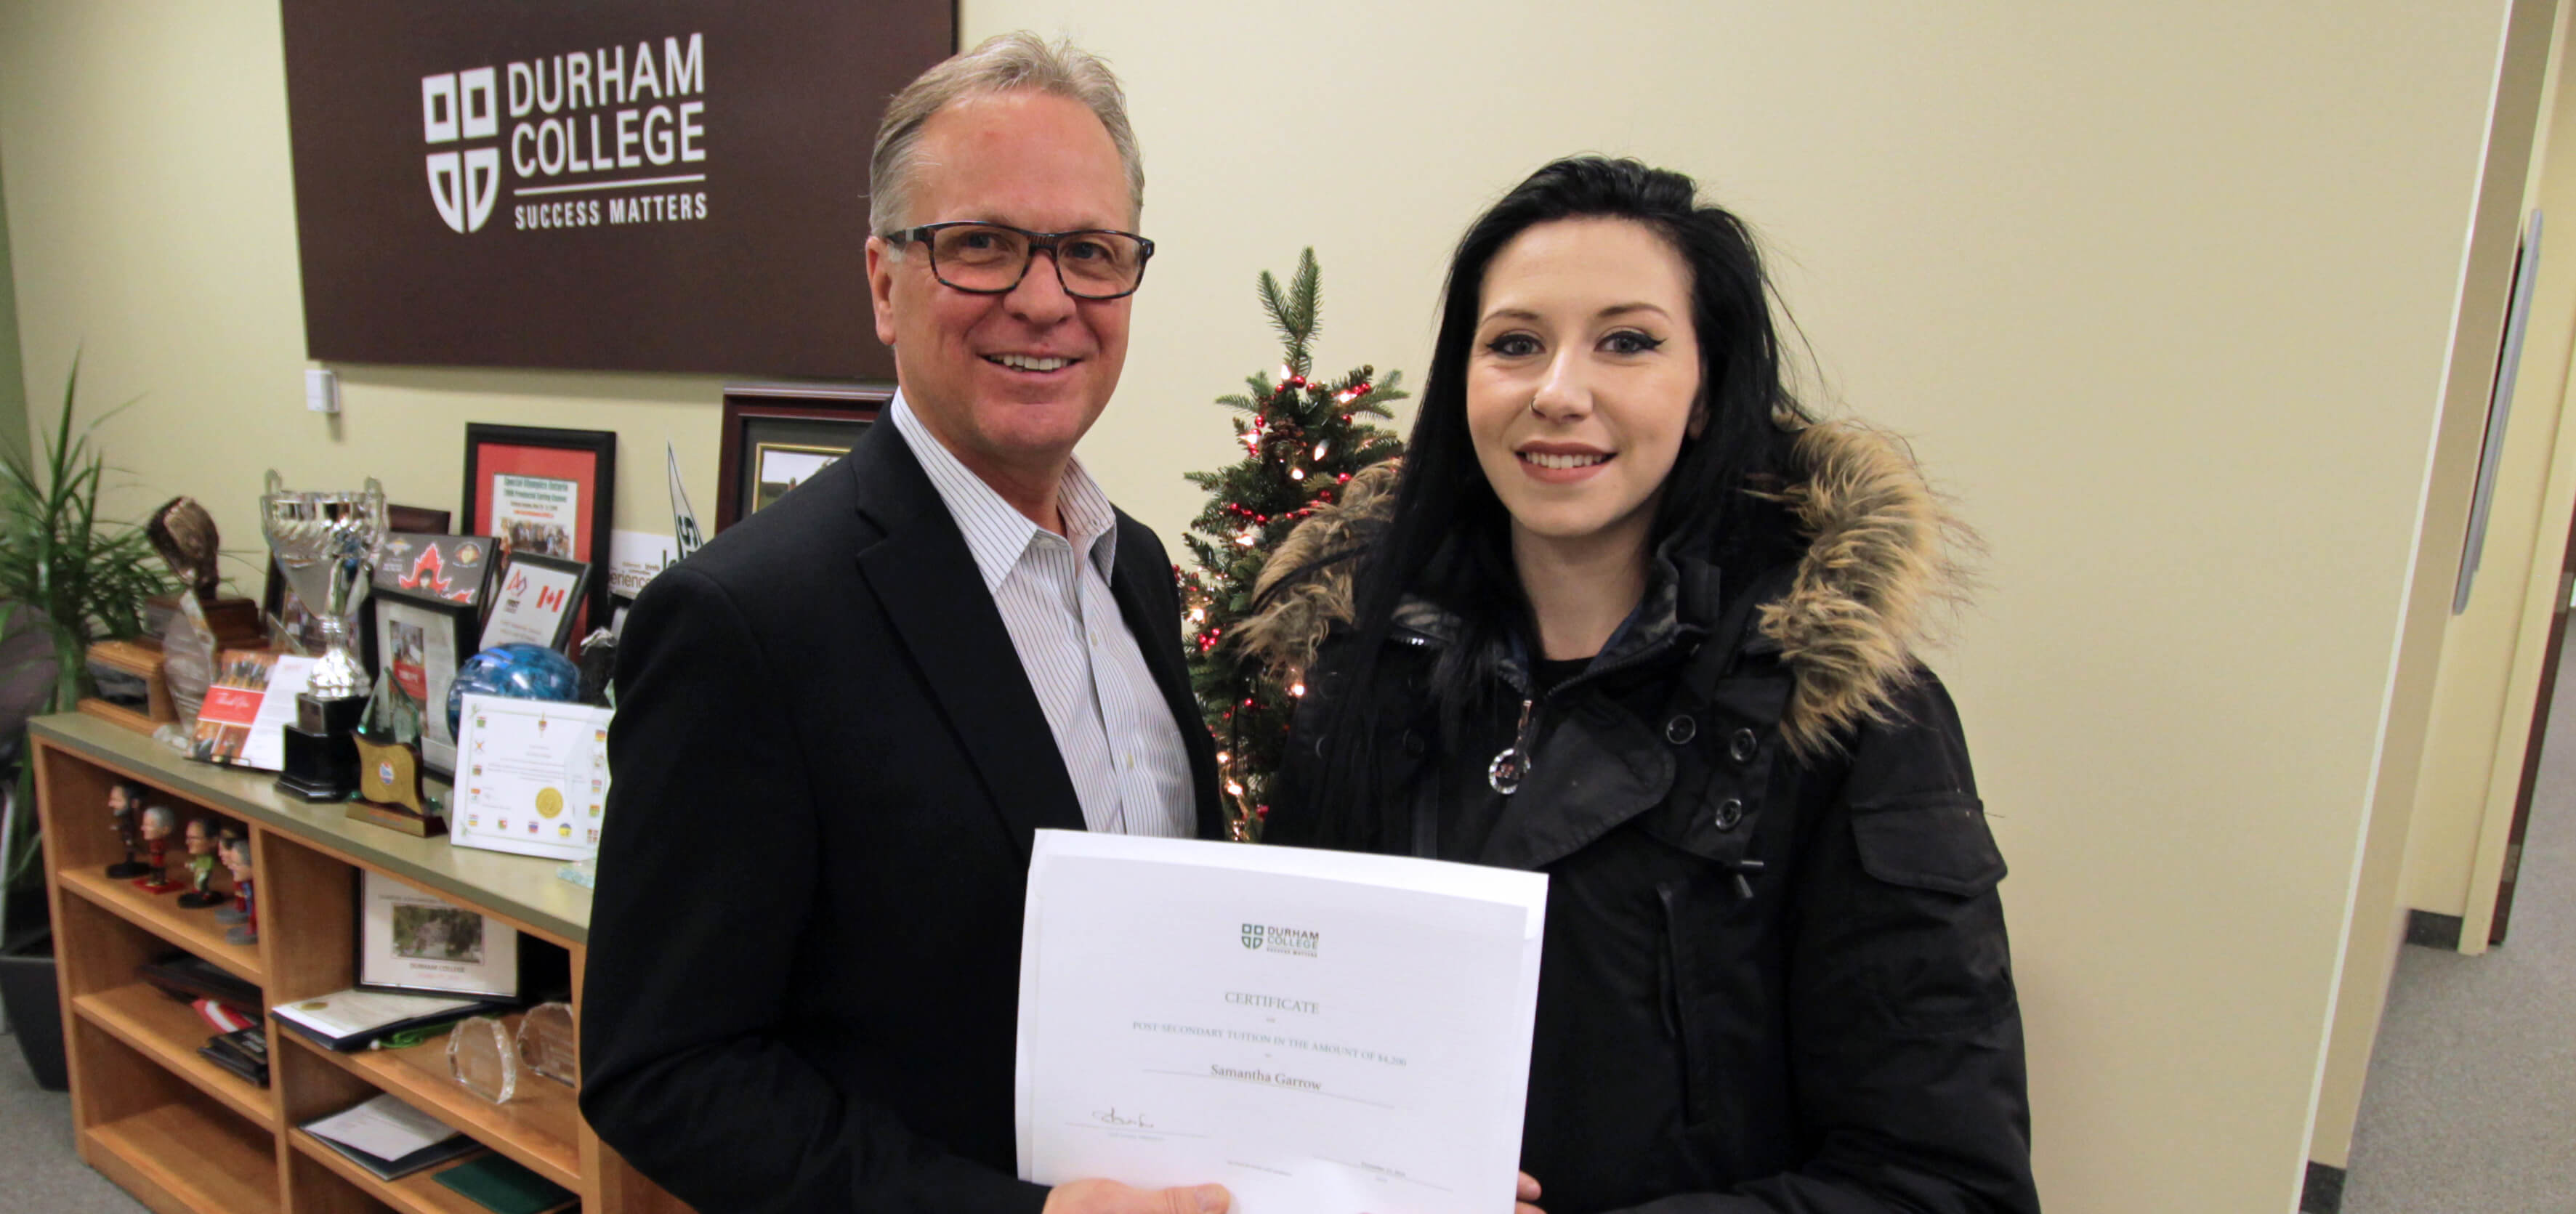 High school student Samantha Garrow is presented with a tuition certificate by DC President Don Lovisa